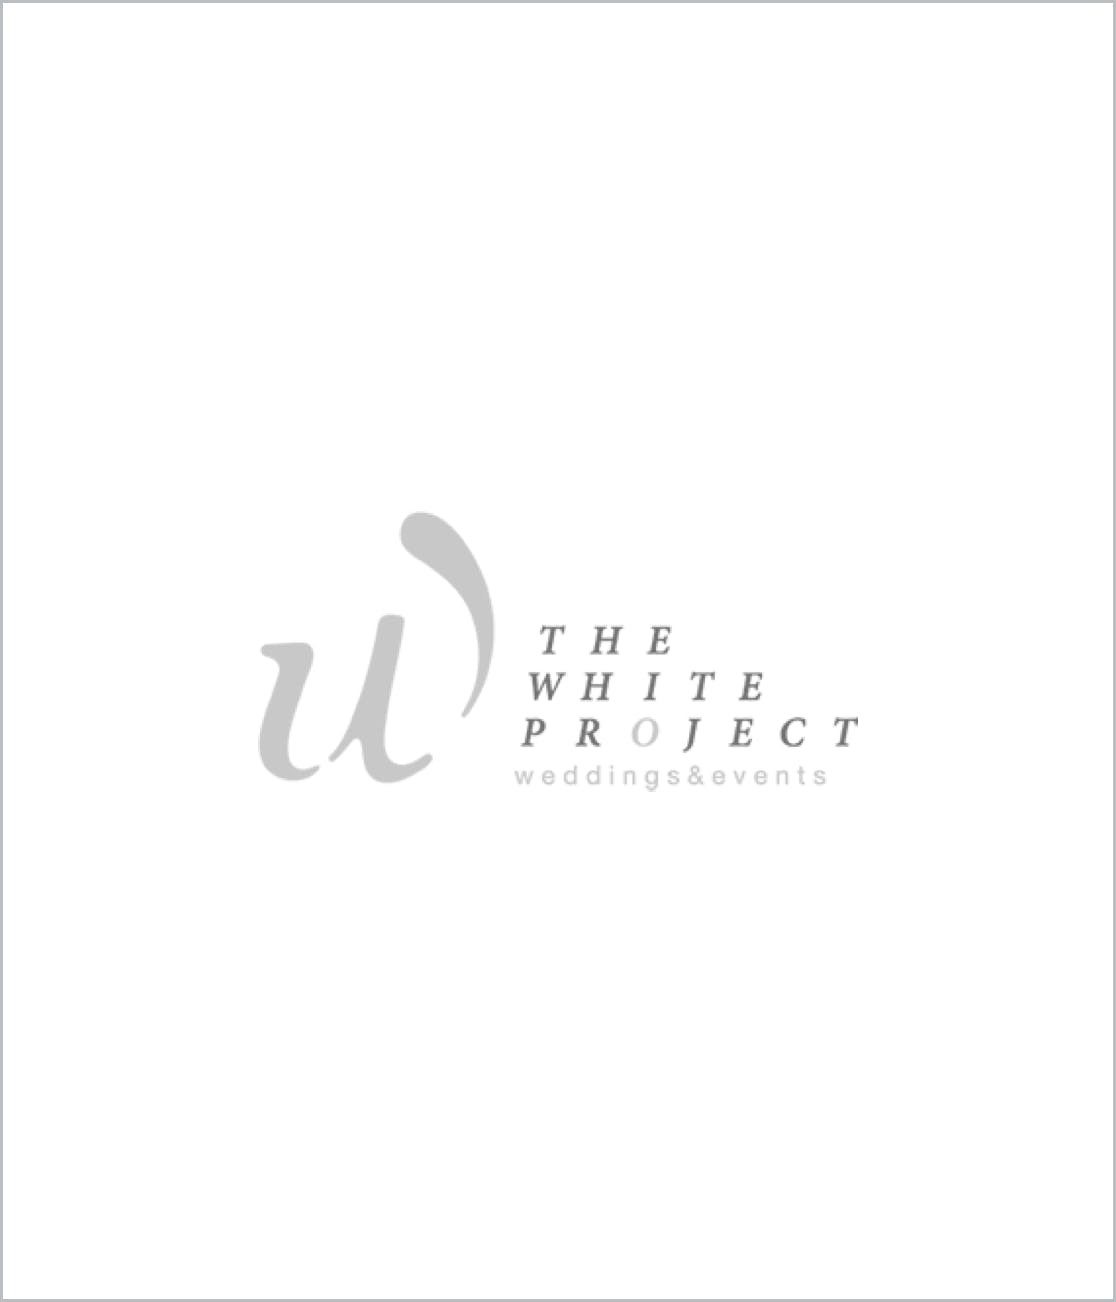 White Project Logo Supplier